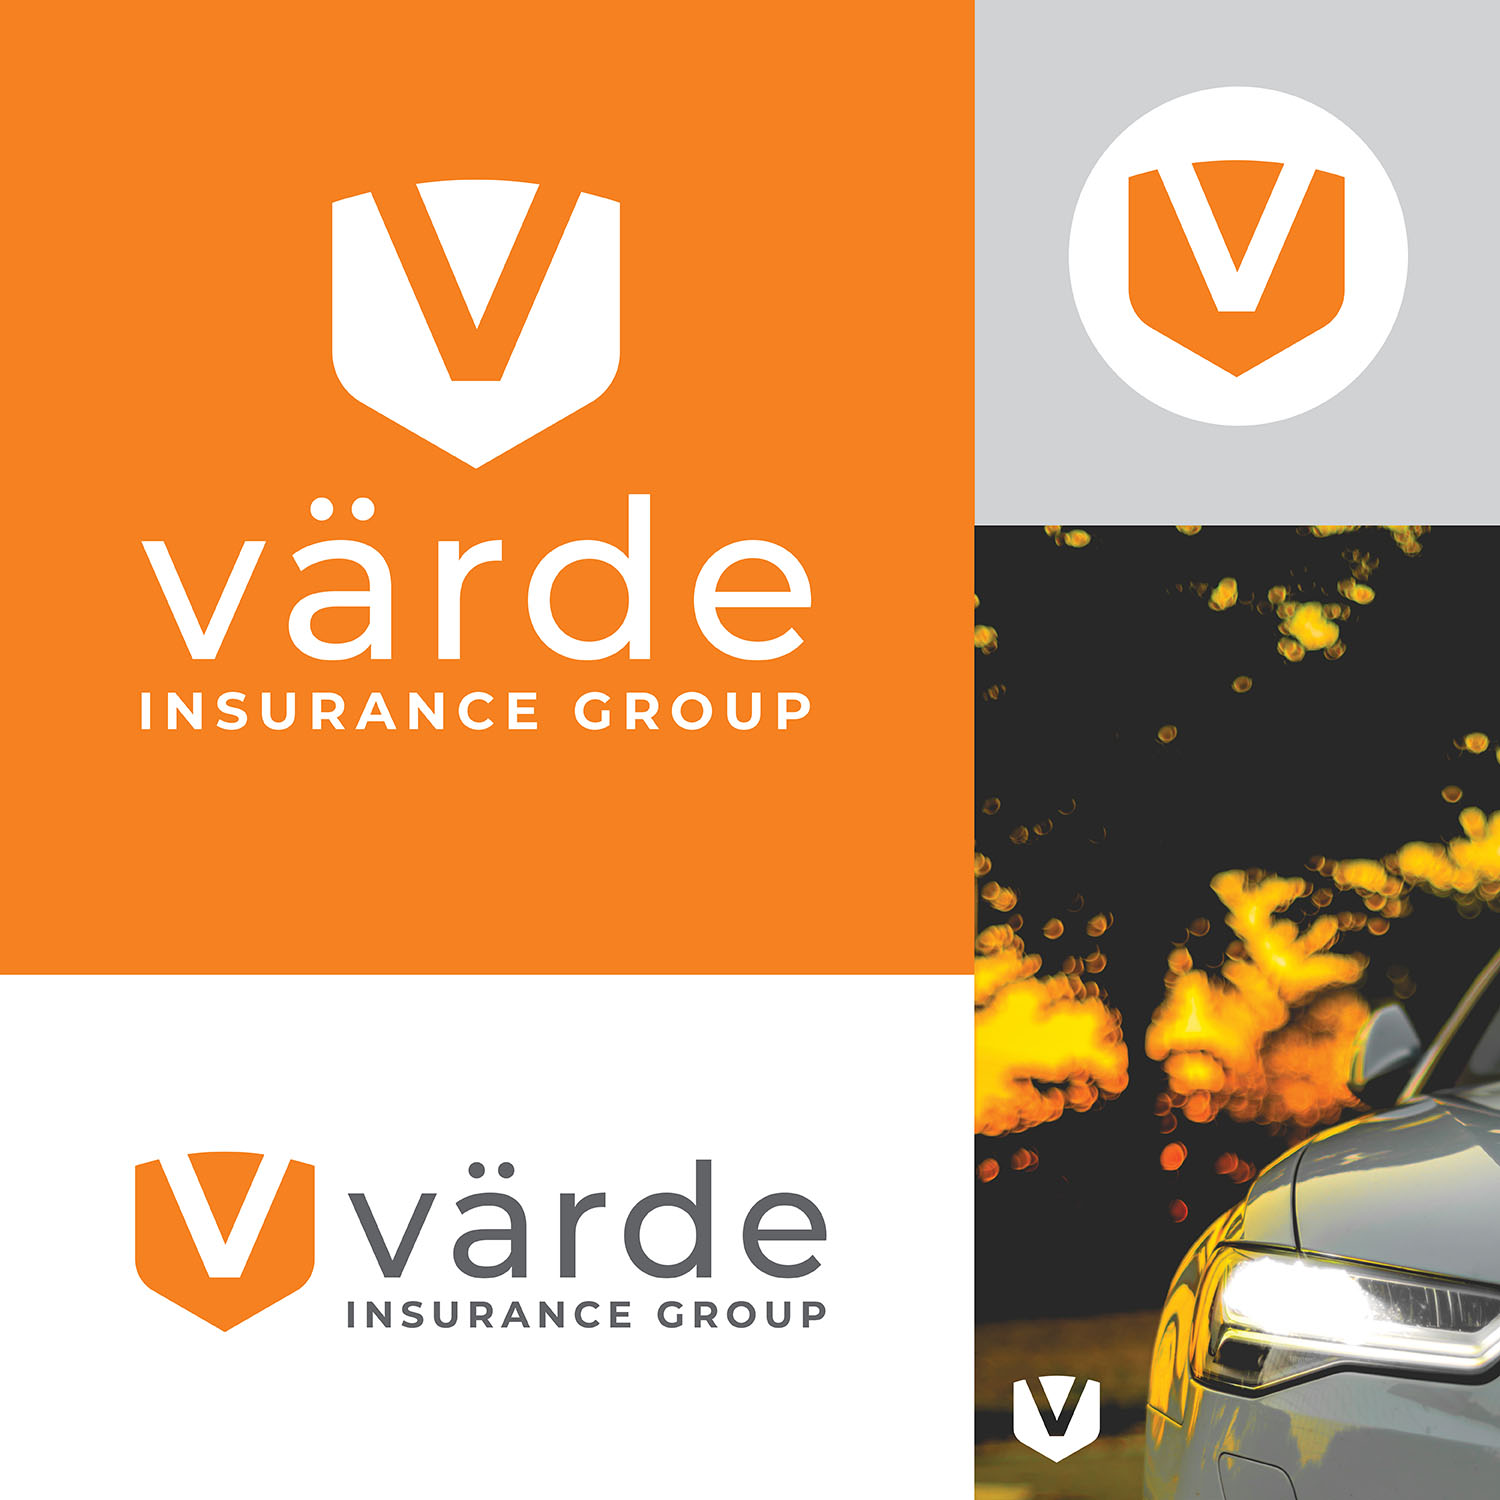 Värde Insurance Group Logos